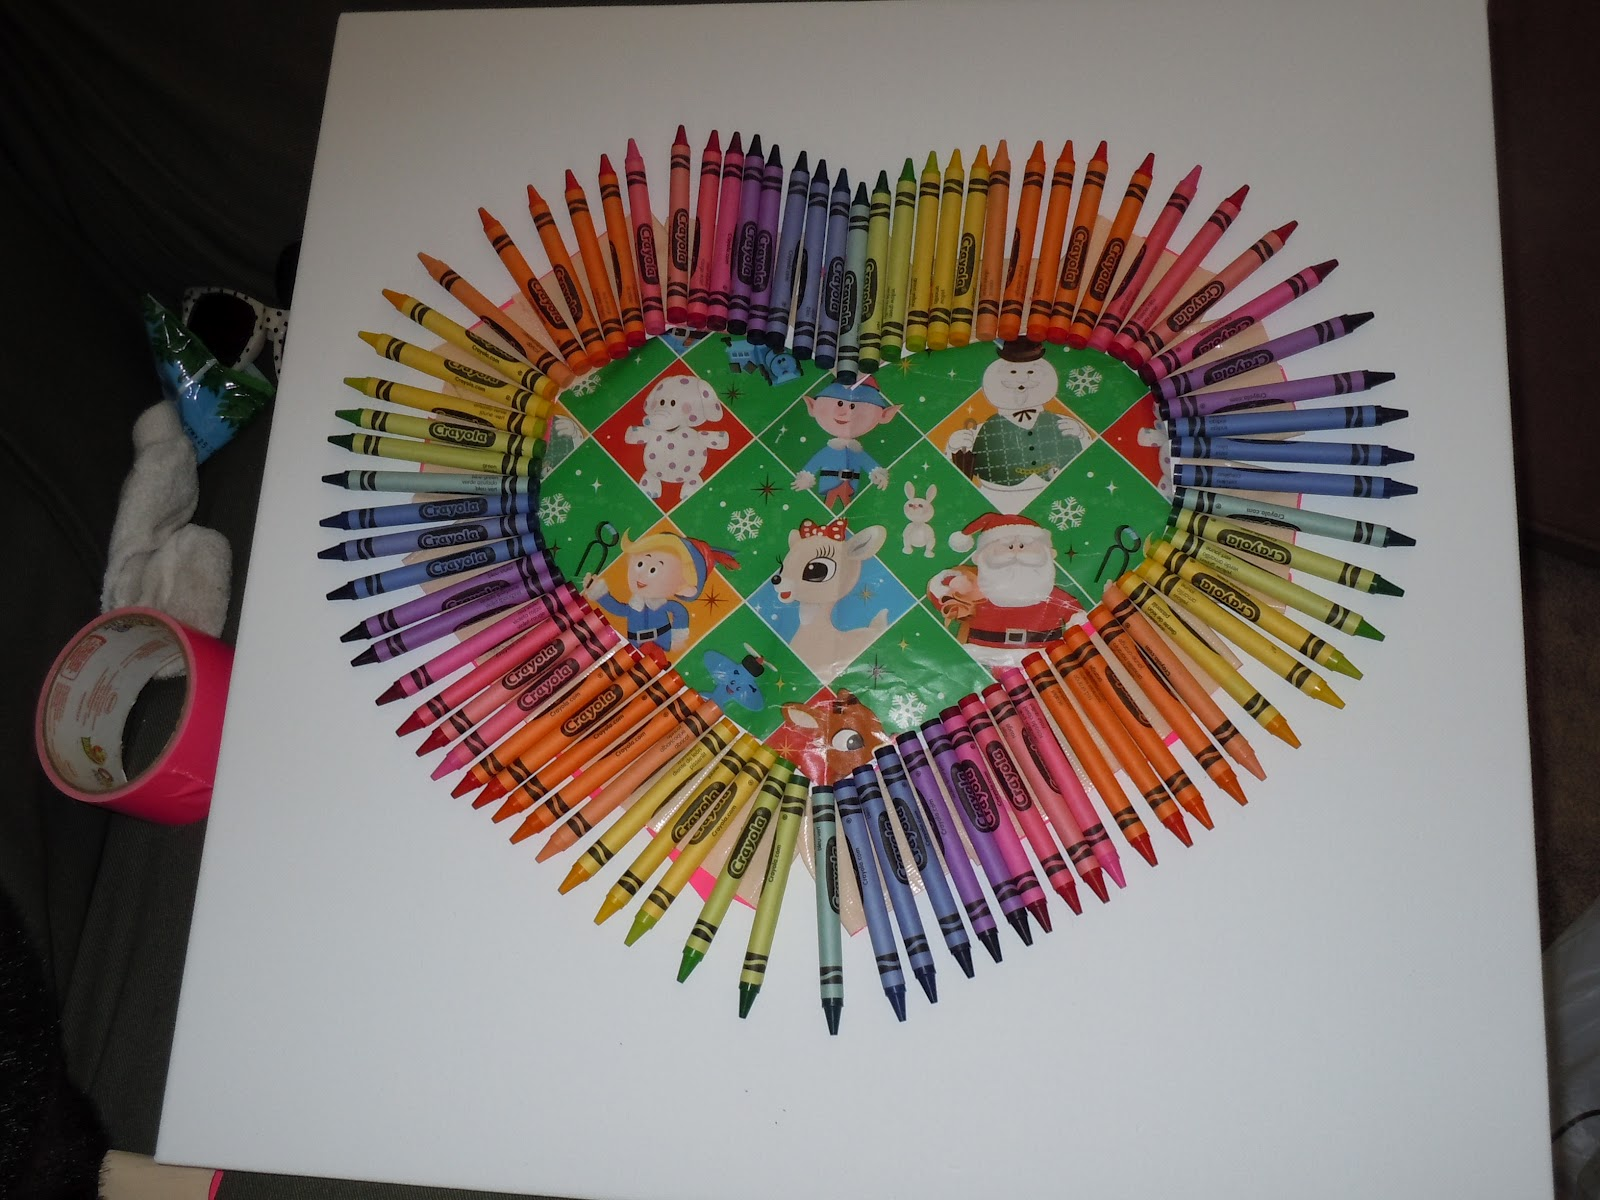 Slowly Melt The Crayons Section By Using Heat Of Your Hairdryer It Took Awhile But I Melted On Low Air